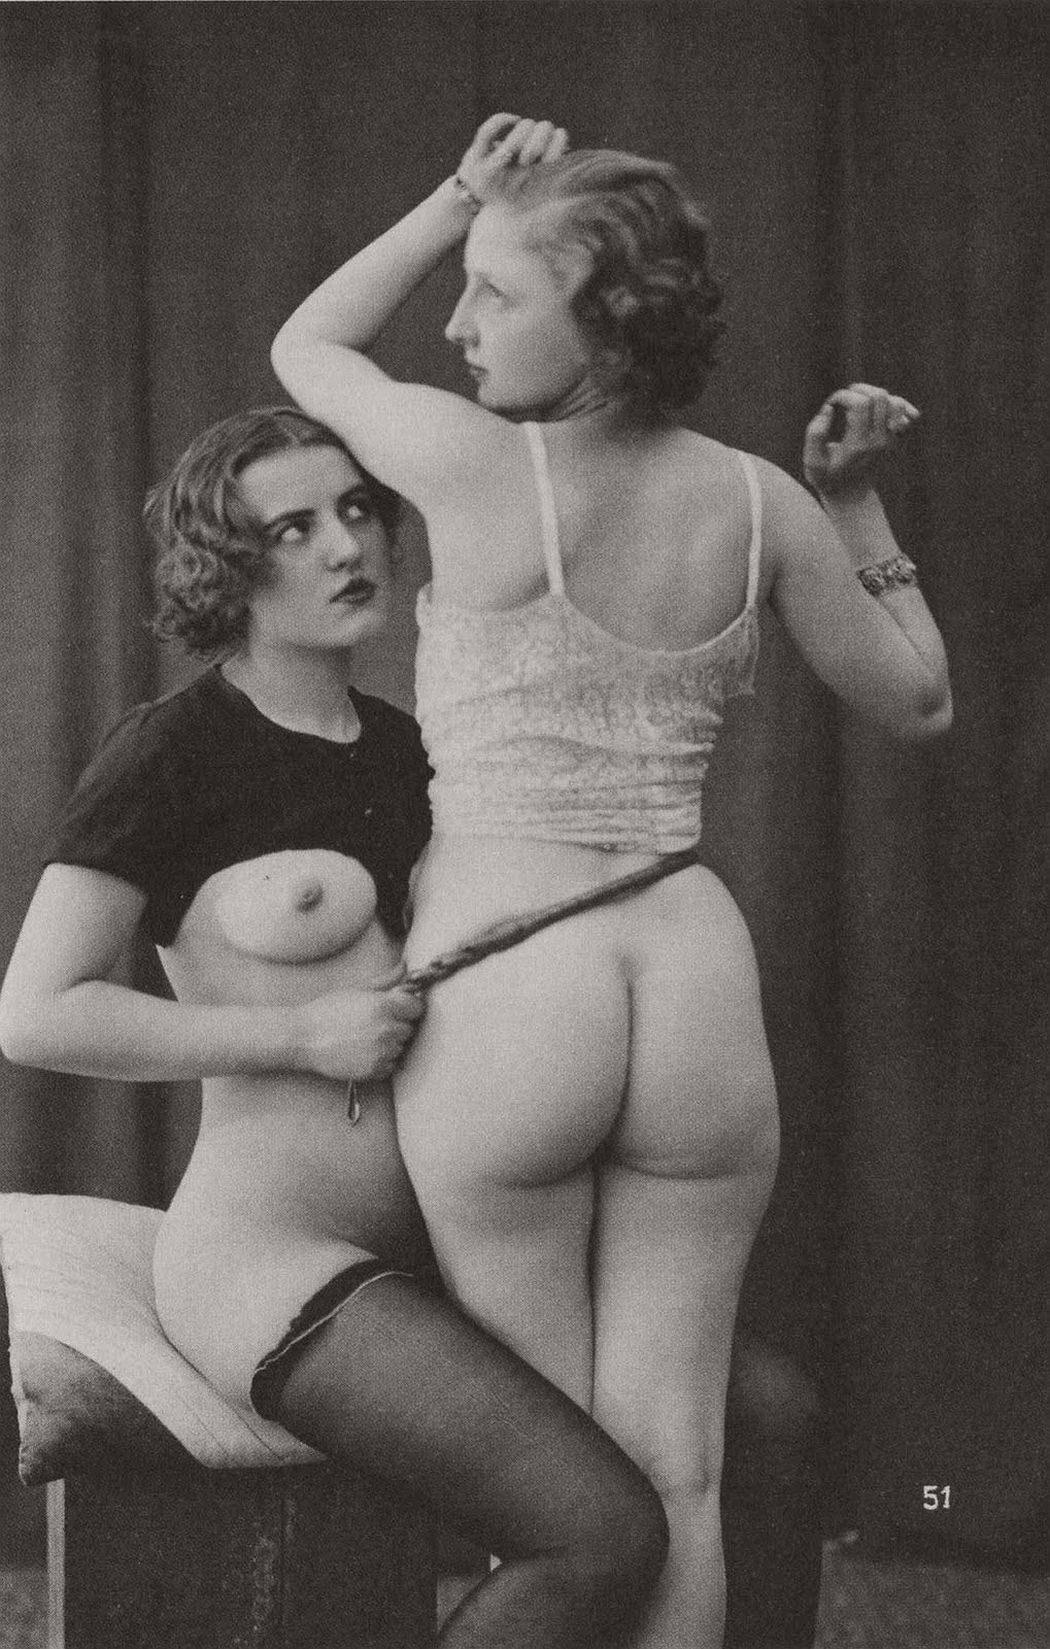 Vintage Pictures Of Nude Women